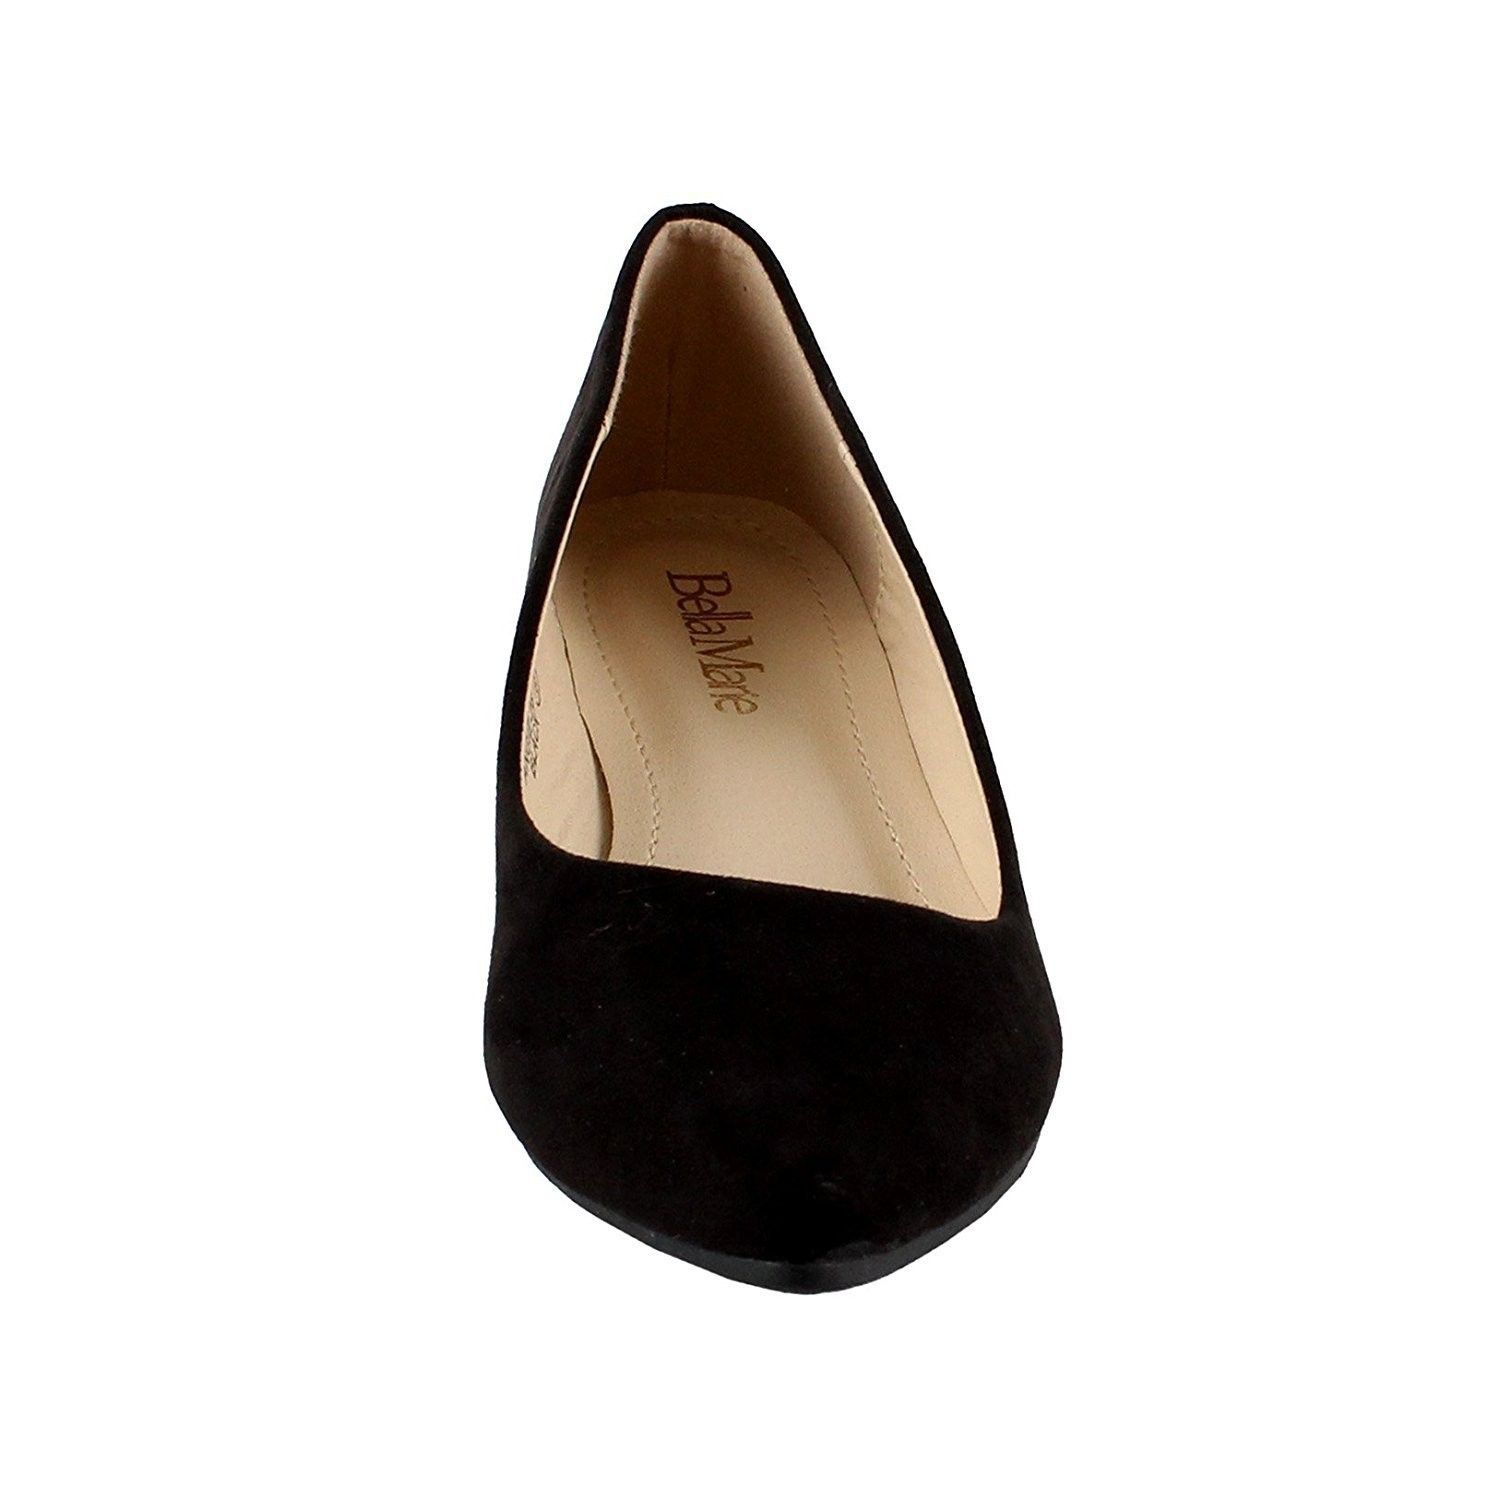 9035f3be997a Women's Shoes, Flats, Women's Classic Pointy Toe Ballet Flat Shoes ...